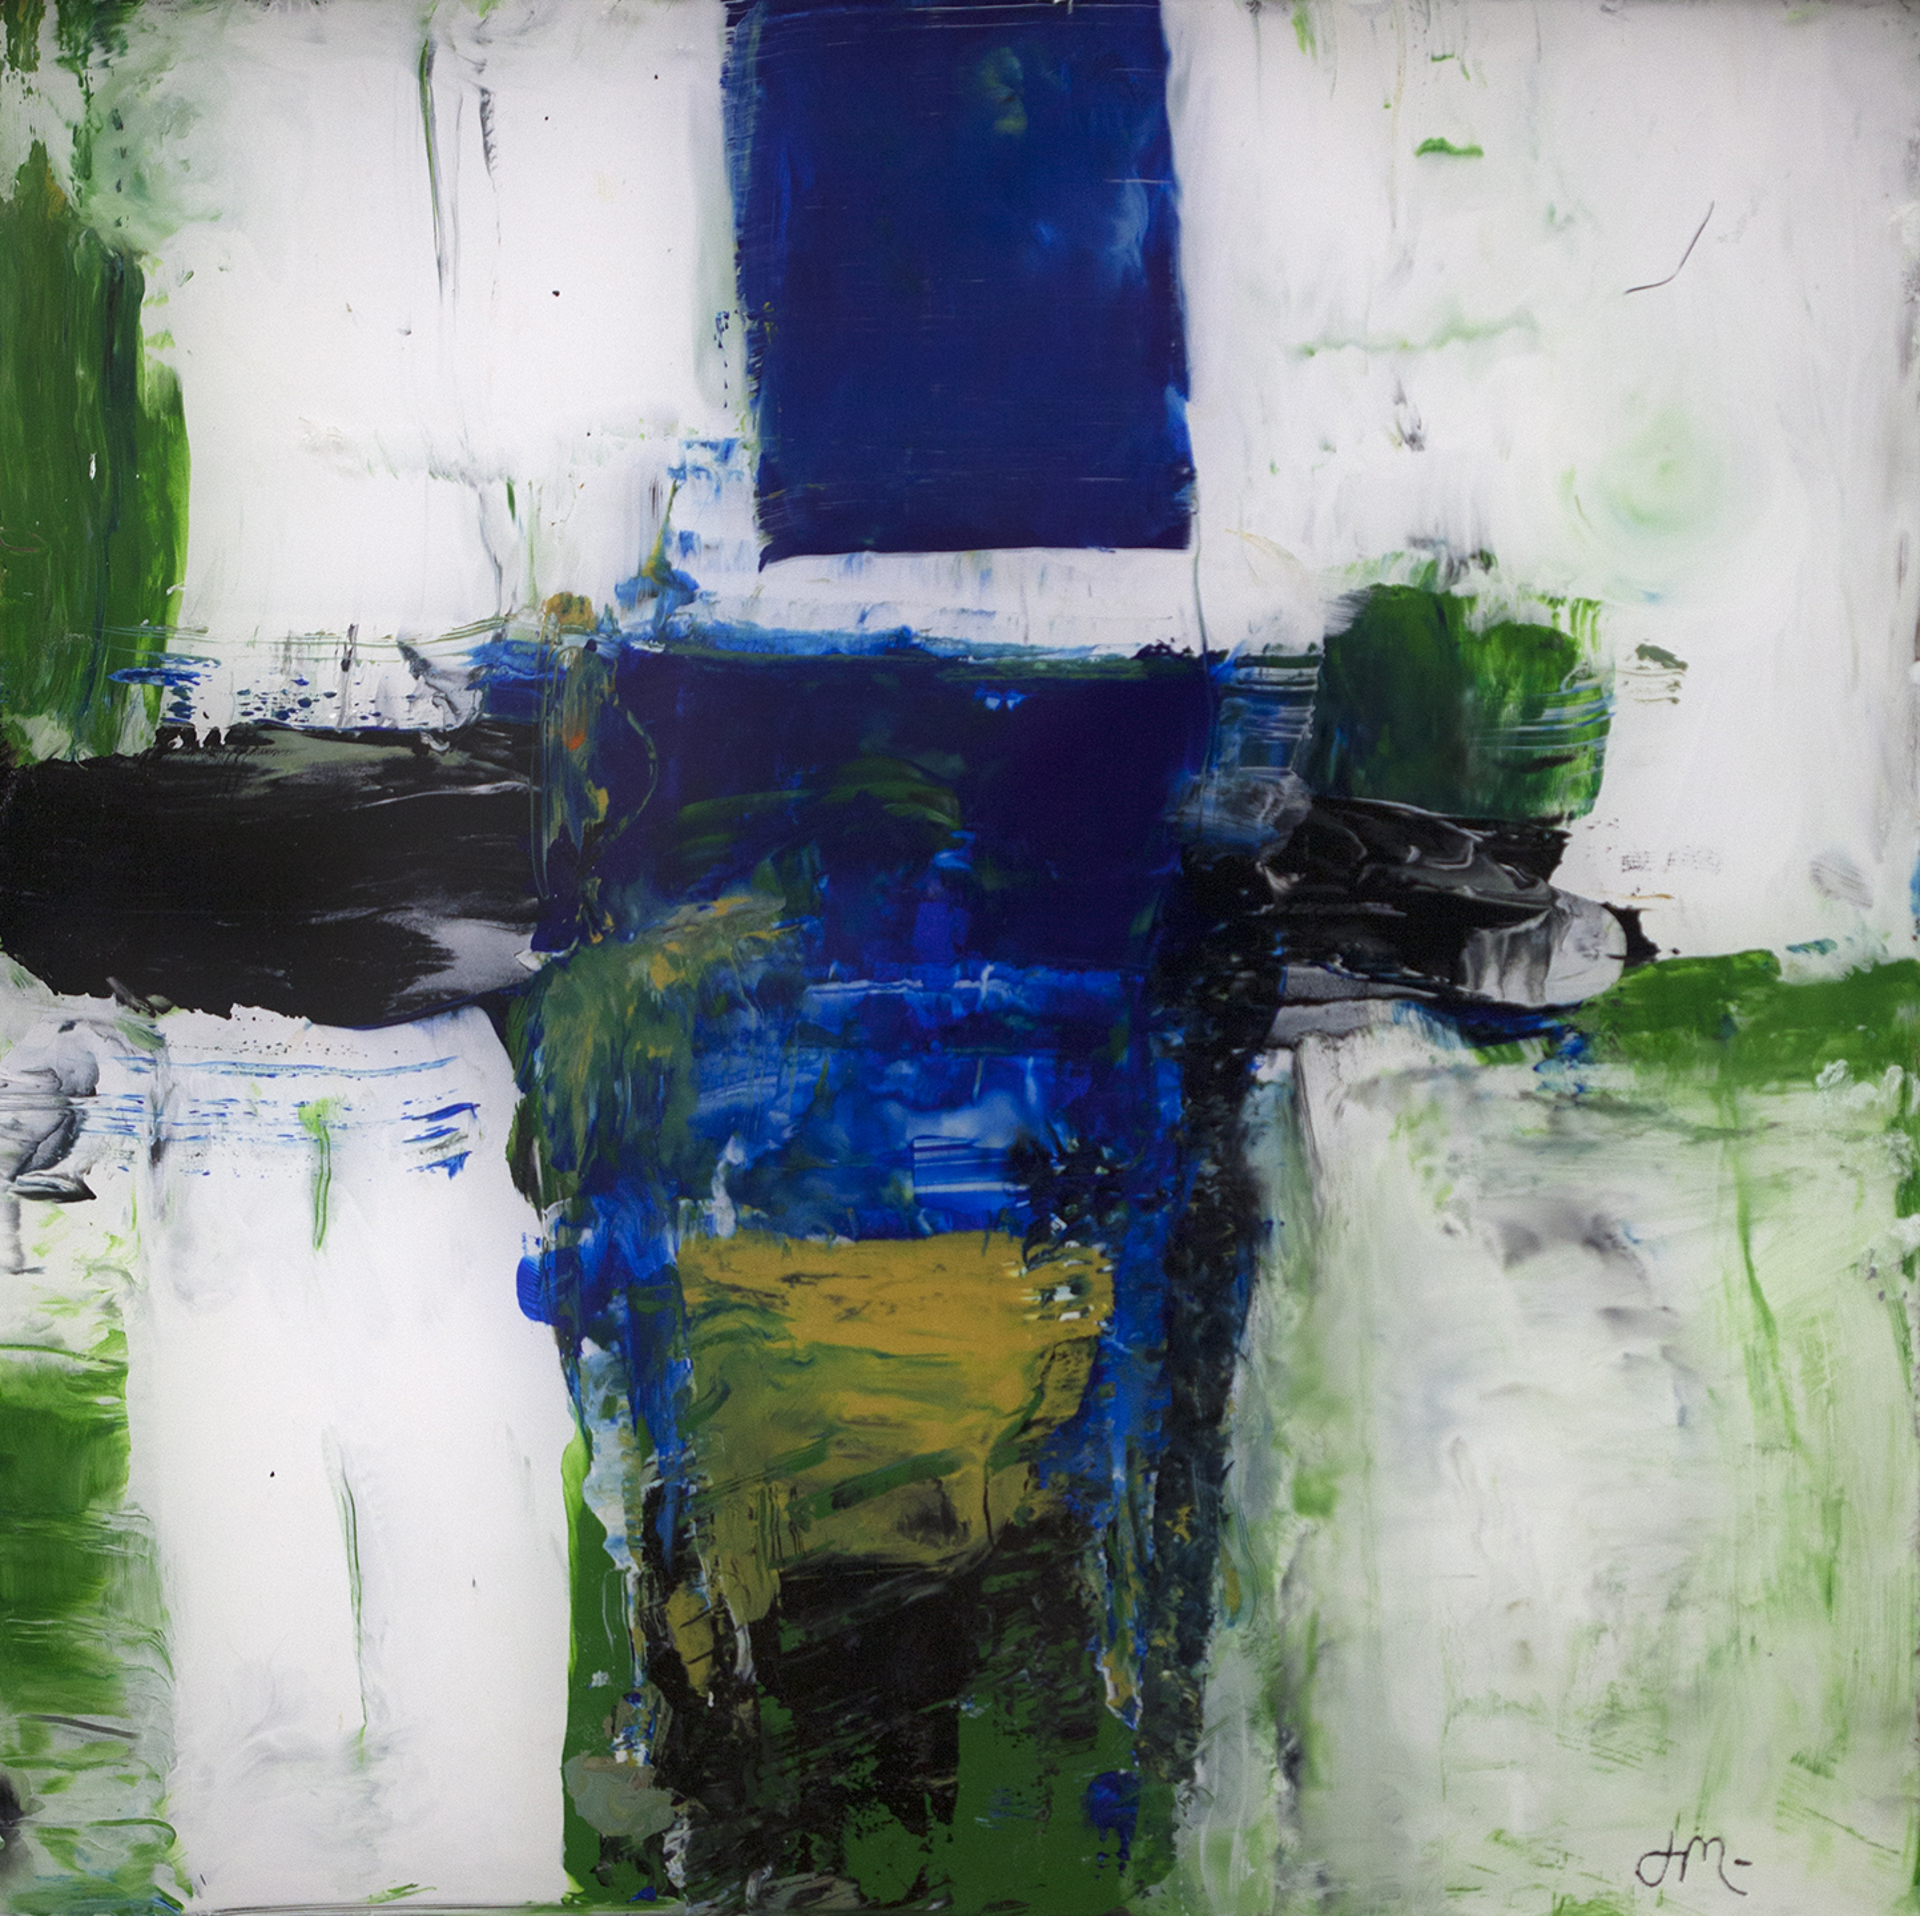 Green and Blue by John McCaw